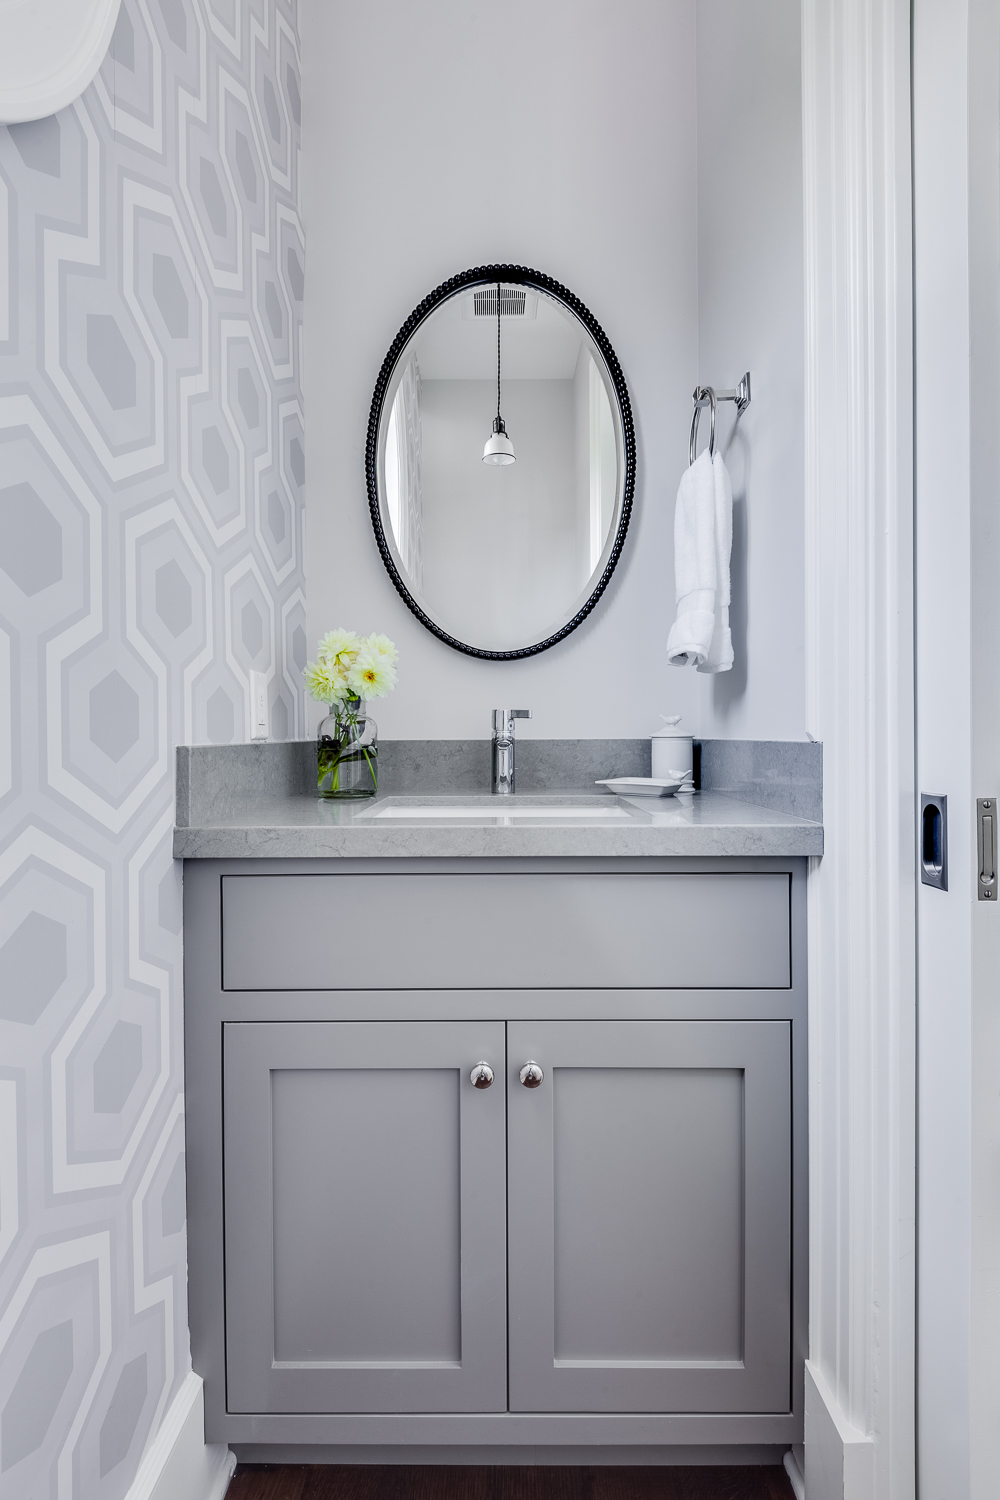 Palo Alto Remodel by Lindsey Chambers powder room